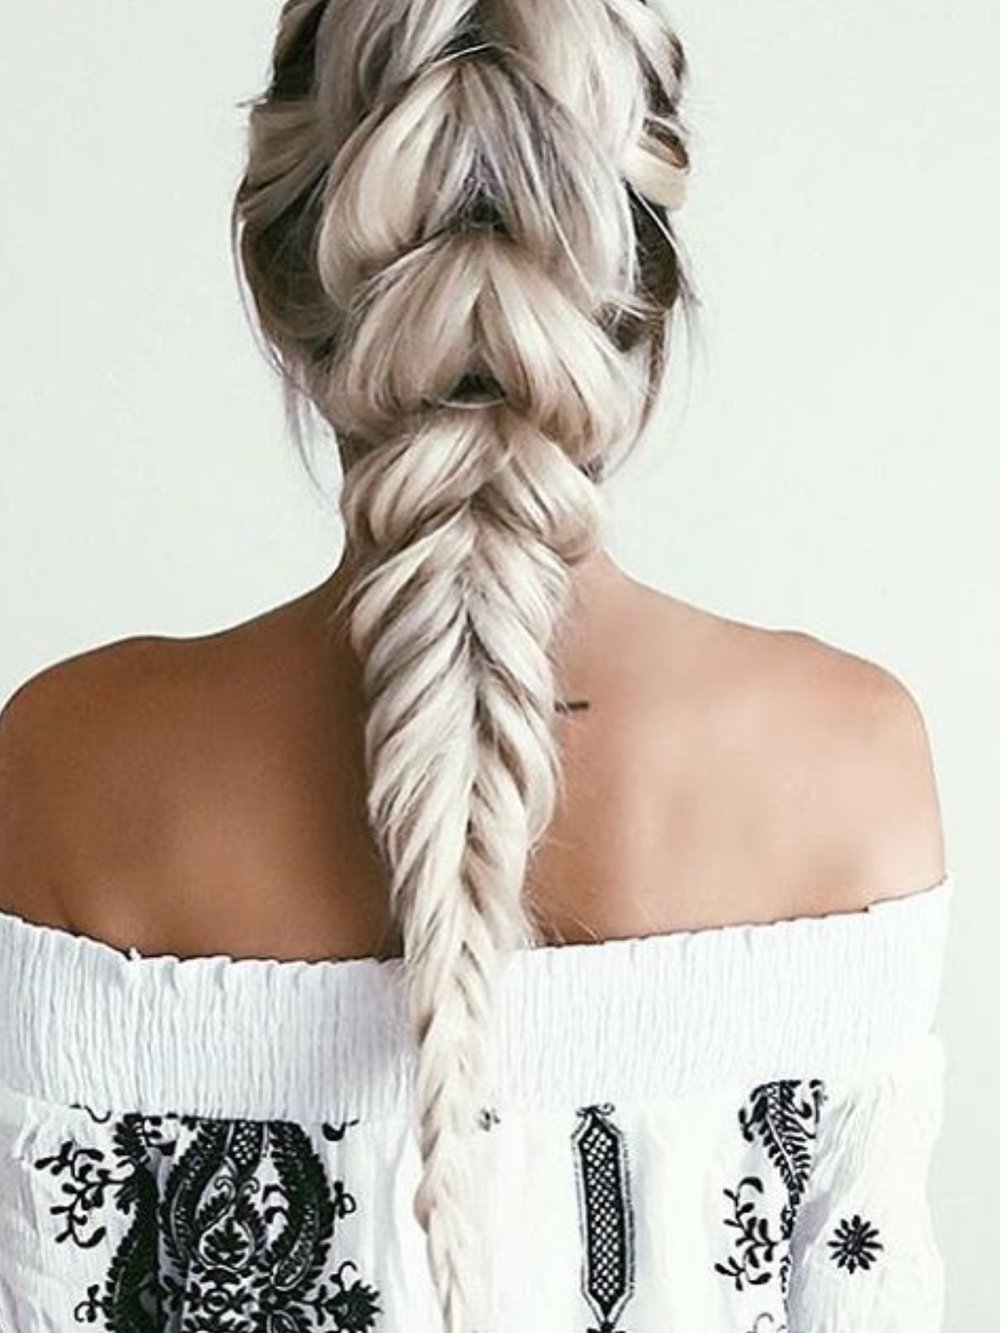 These are the hottest trending braided hair styles on Pinterest right now.